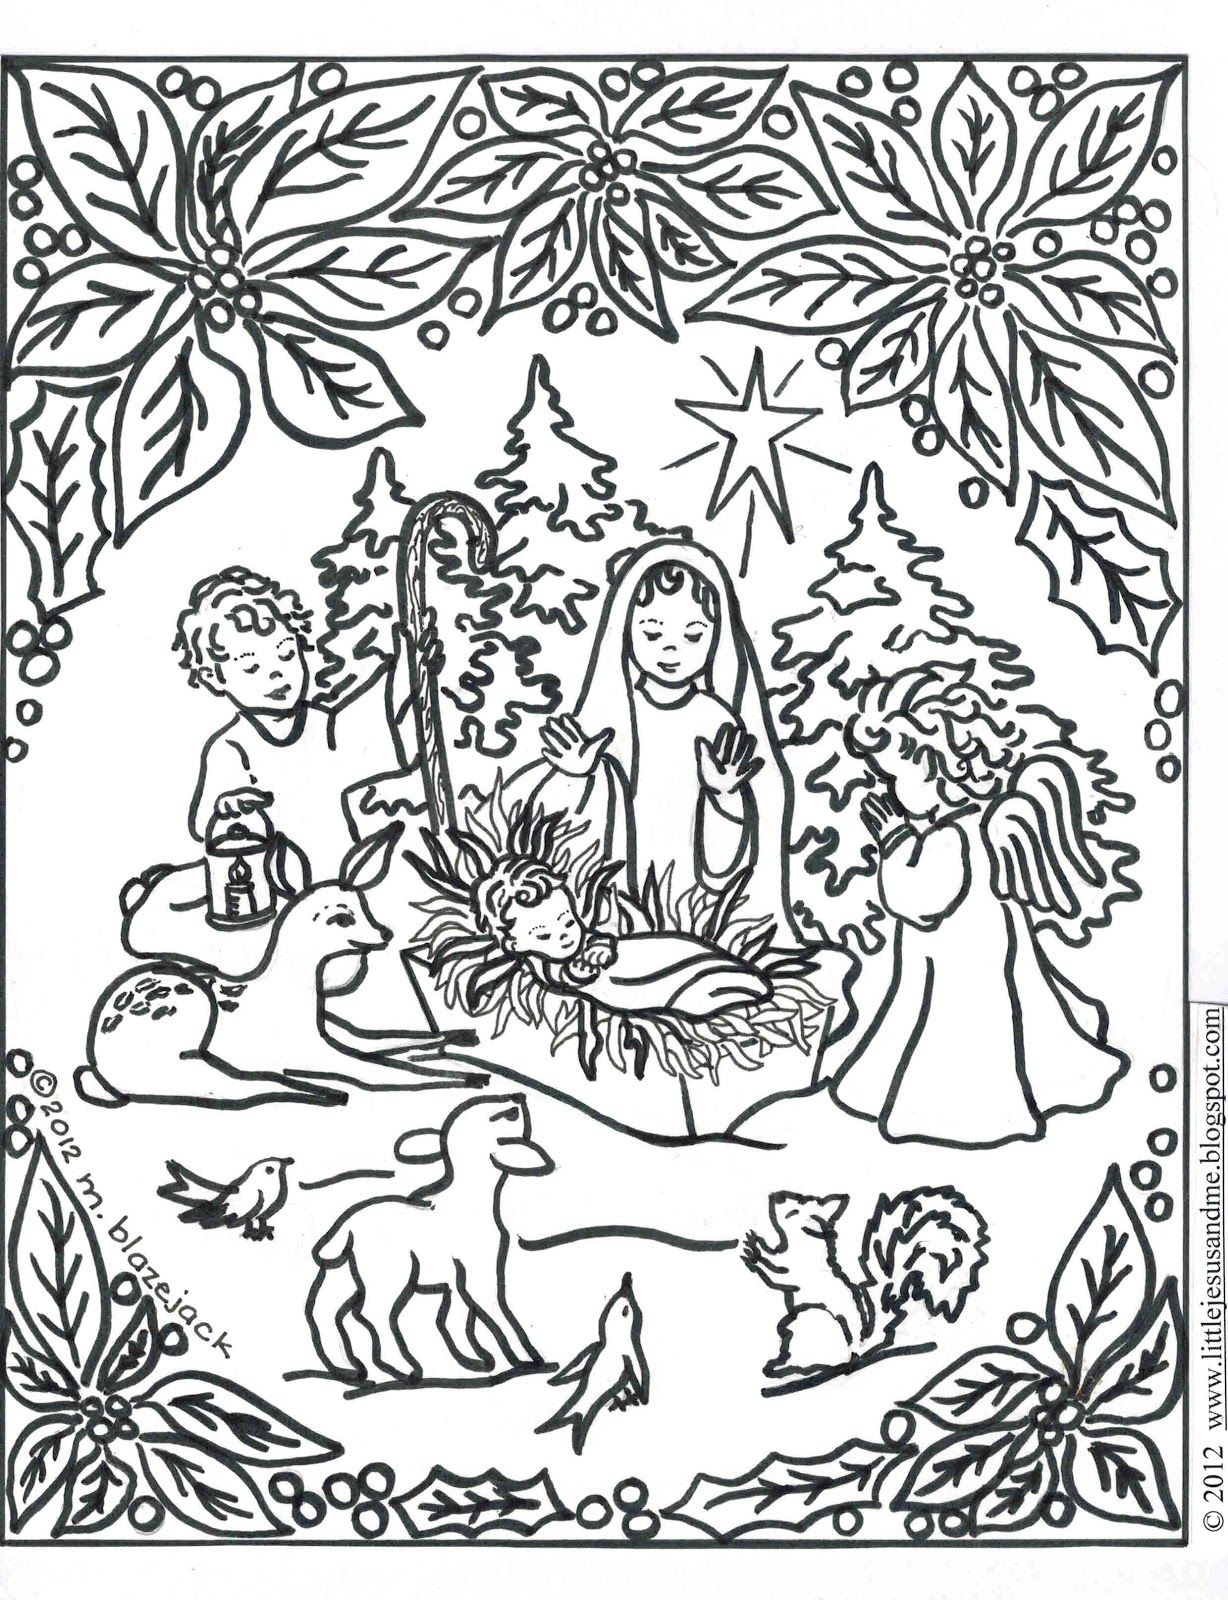 Jesus And Nativity Coloring Page Nativity Coloring Nativity Coloring Pages Christmas Coloring Books